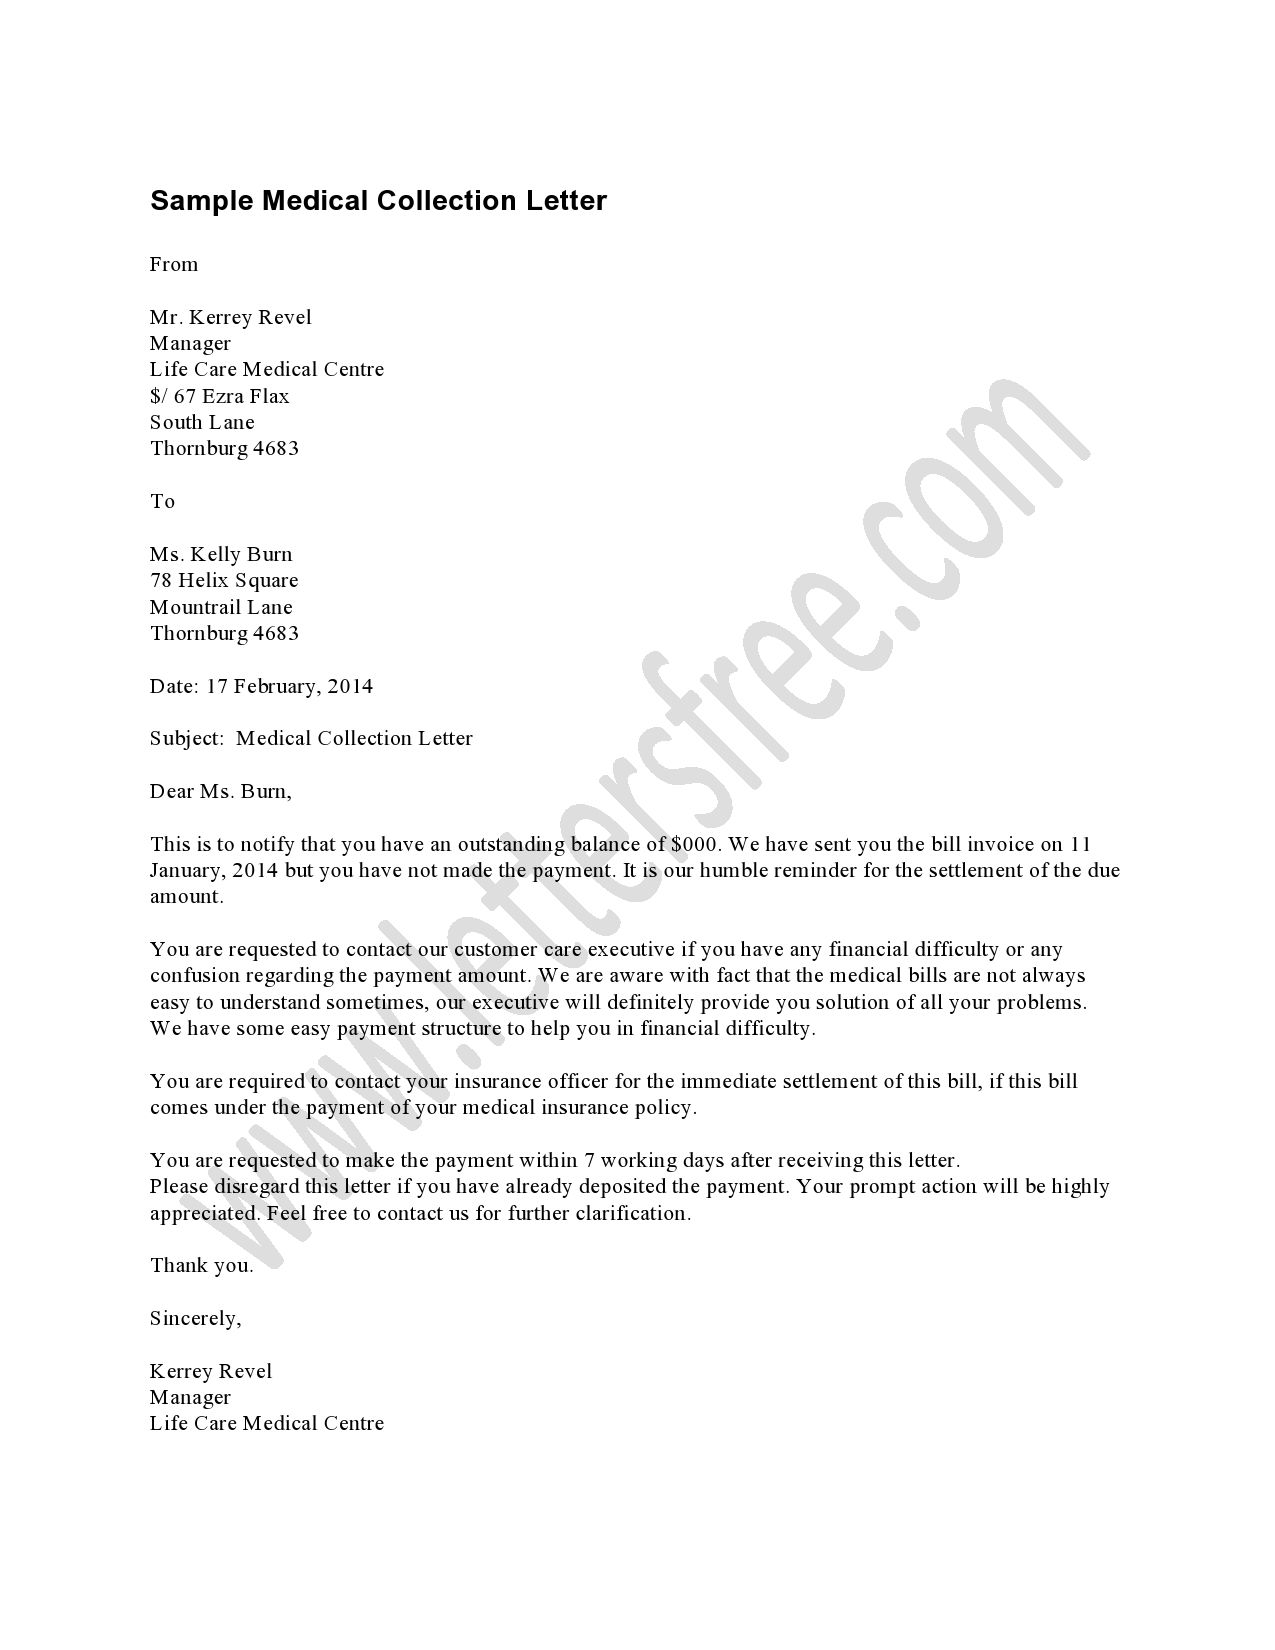 Sample Payment Arrangement Letter Collection Agency